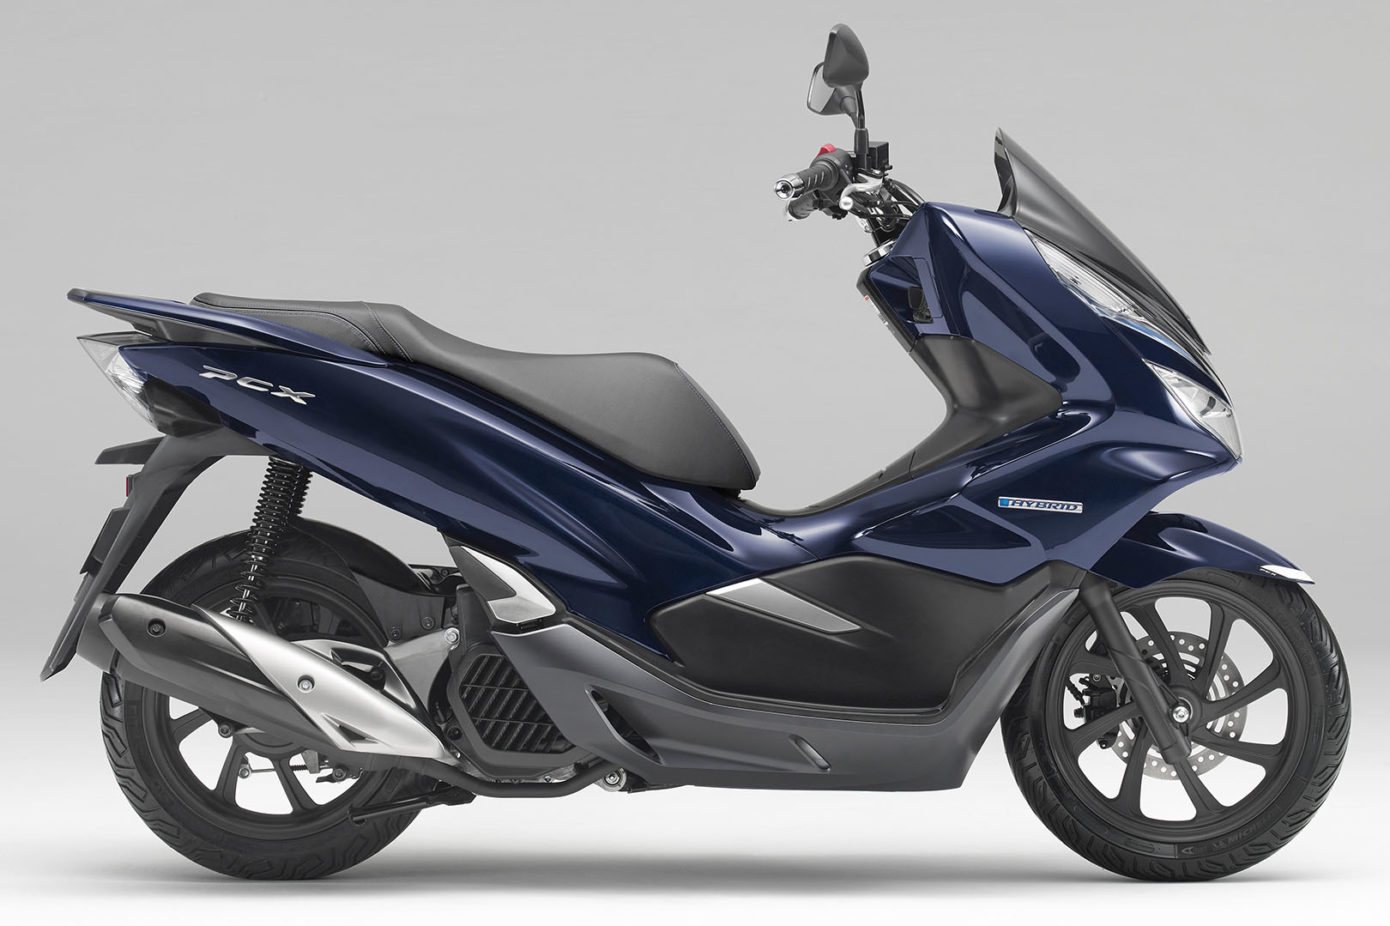 2019 Honda Pcx Hybrid Scooter First Look Gasoline Electric 14